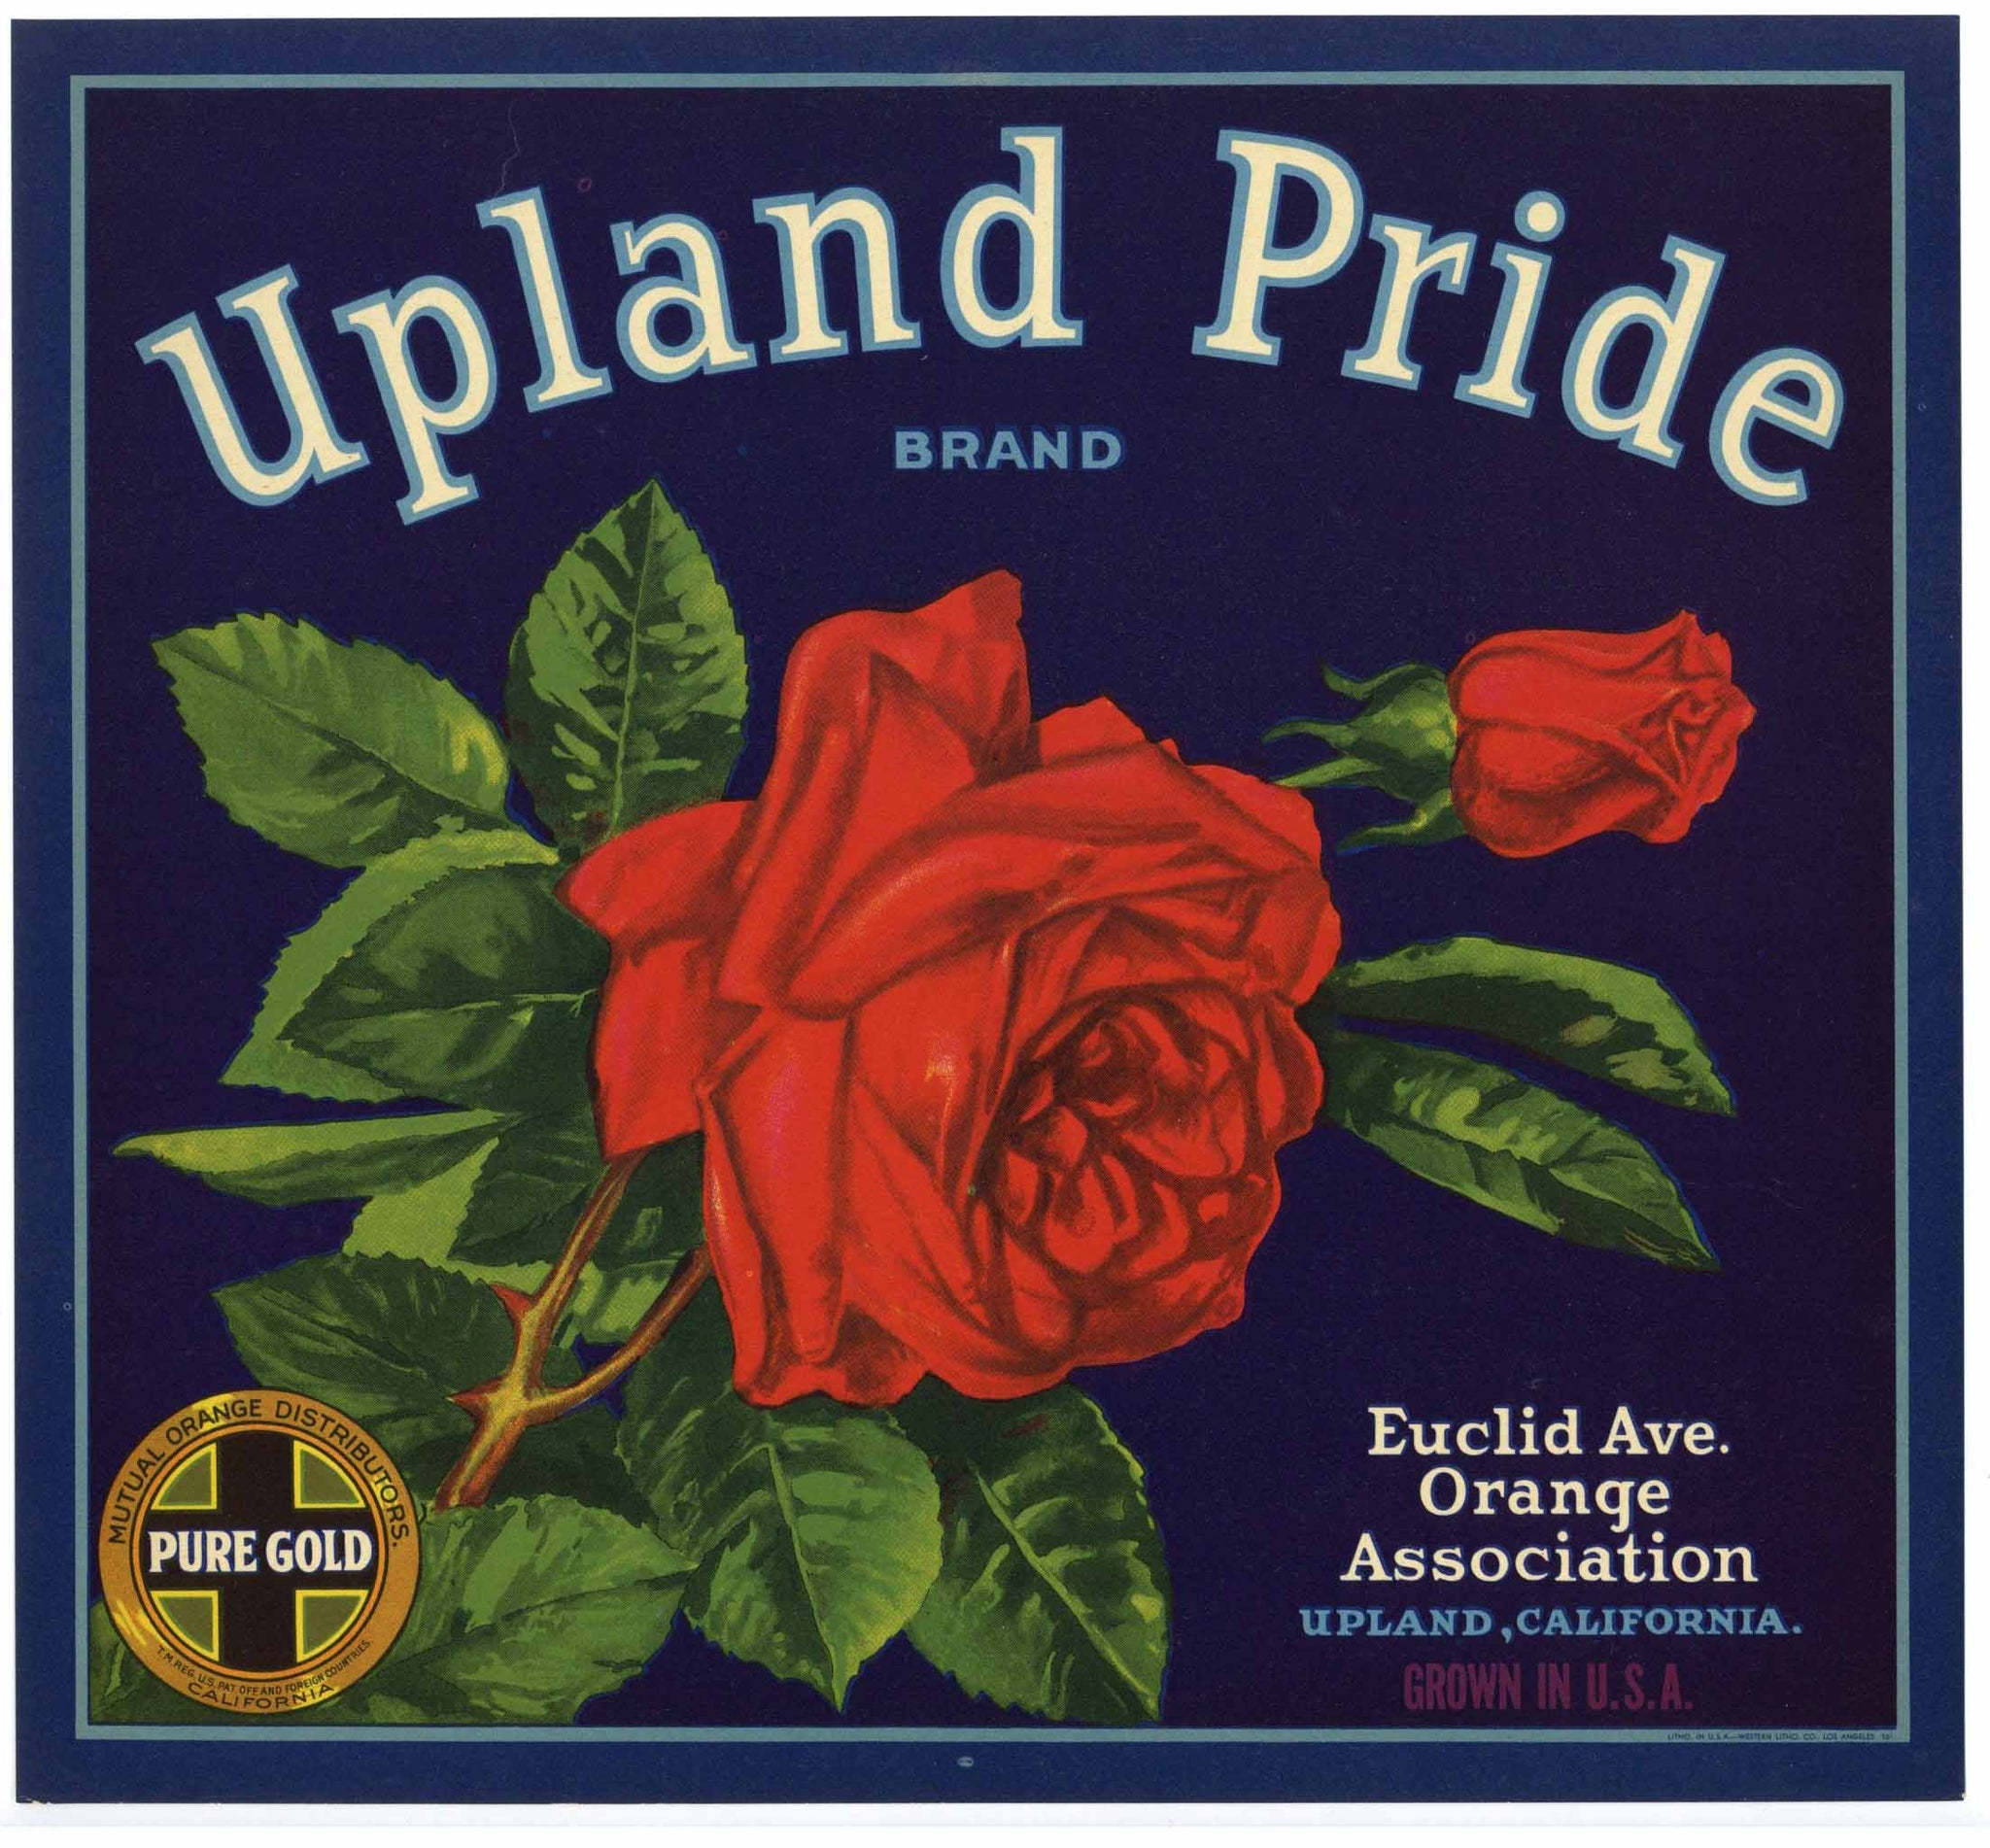 Upland Pride Brand Vintage Orange Crate Label